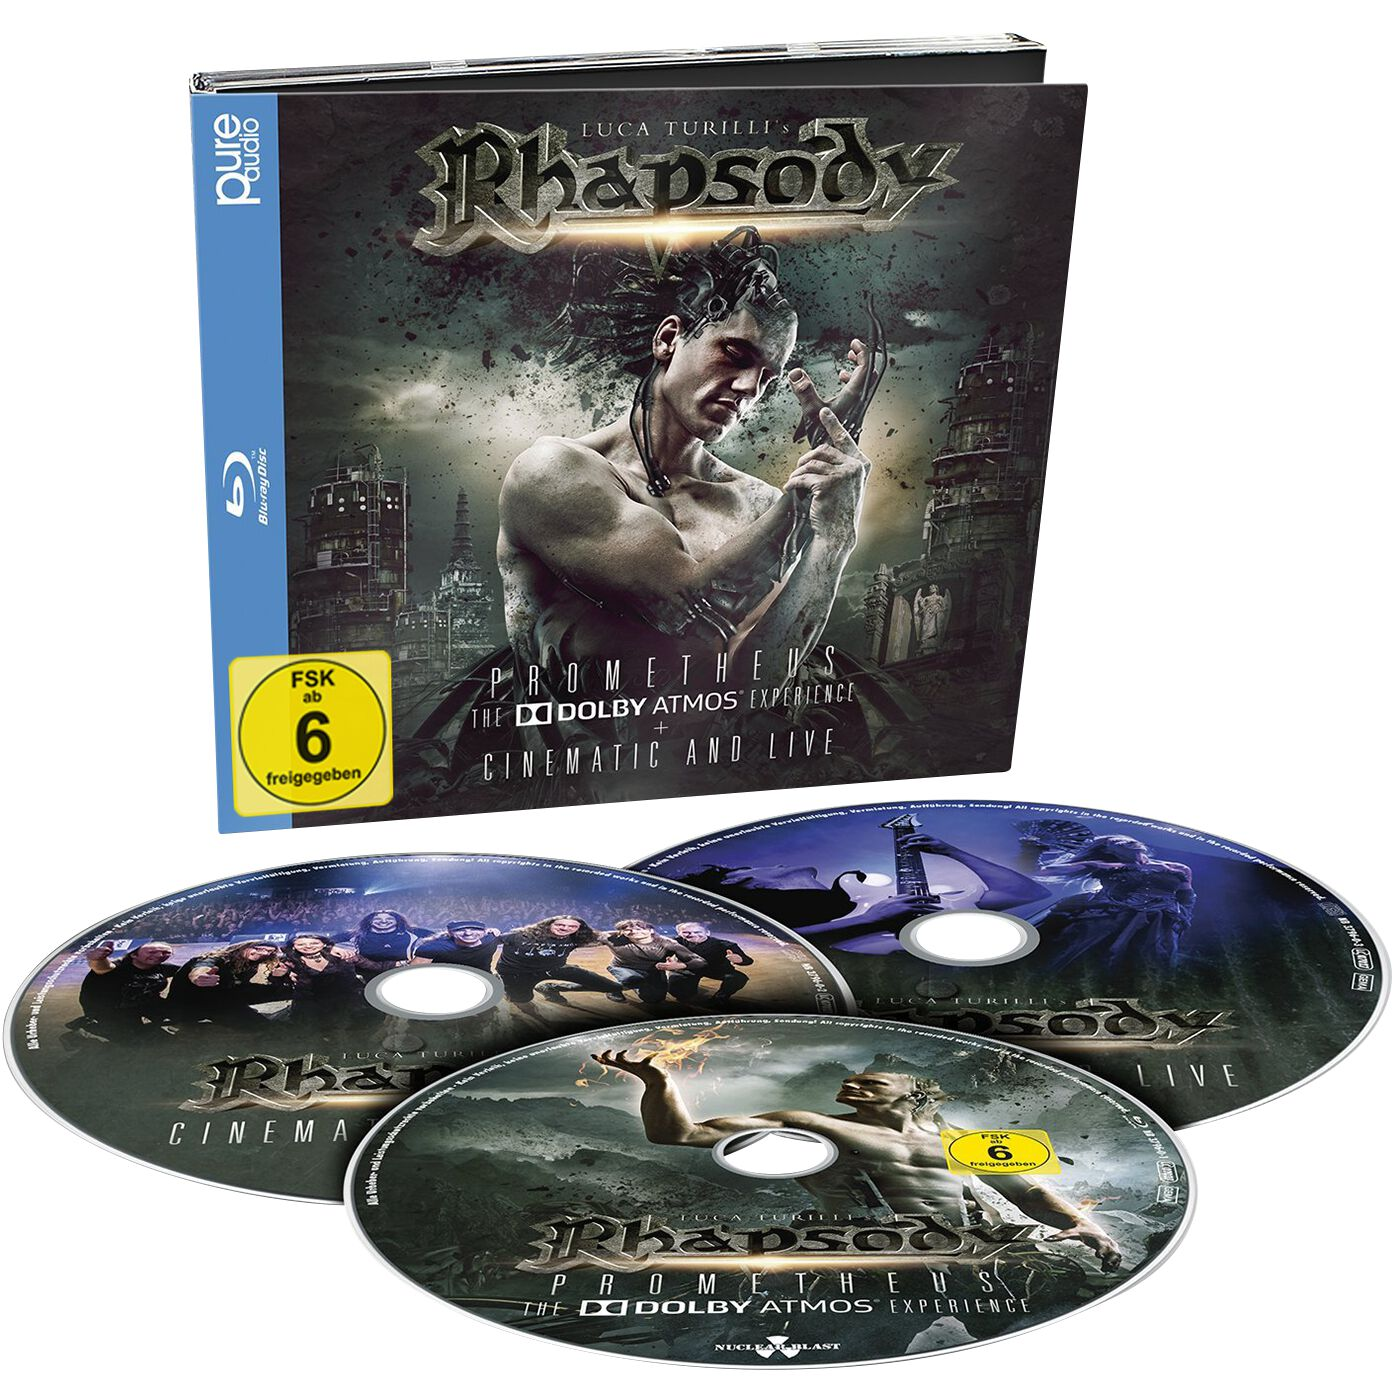 Image of Rhapsody Prometheus, The Dolby Atmos Experience Blu-ray & 2-CD Standard